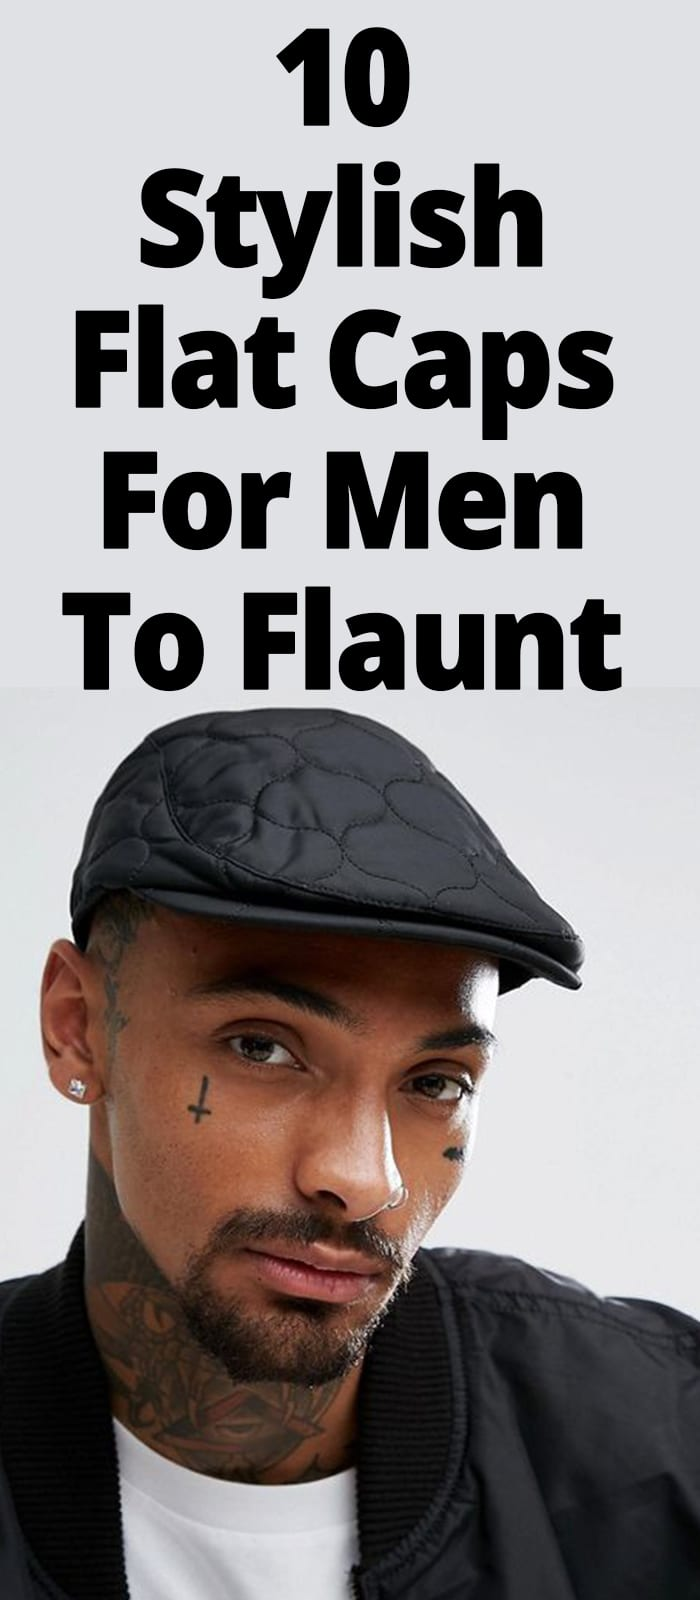 FLAT CAPS FOR MEN TO FLAUNT